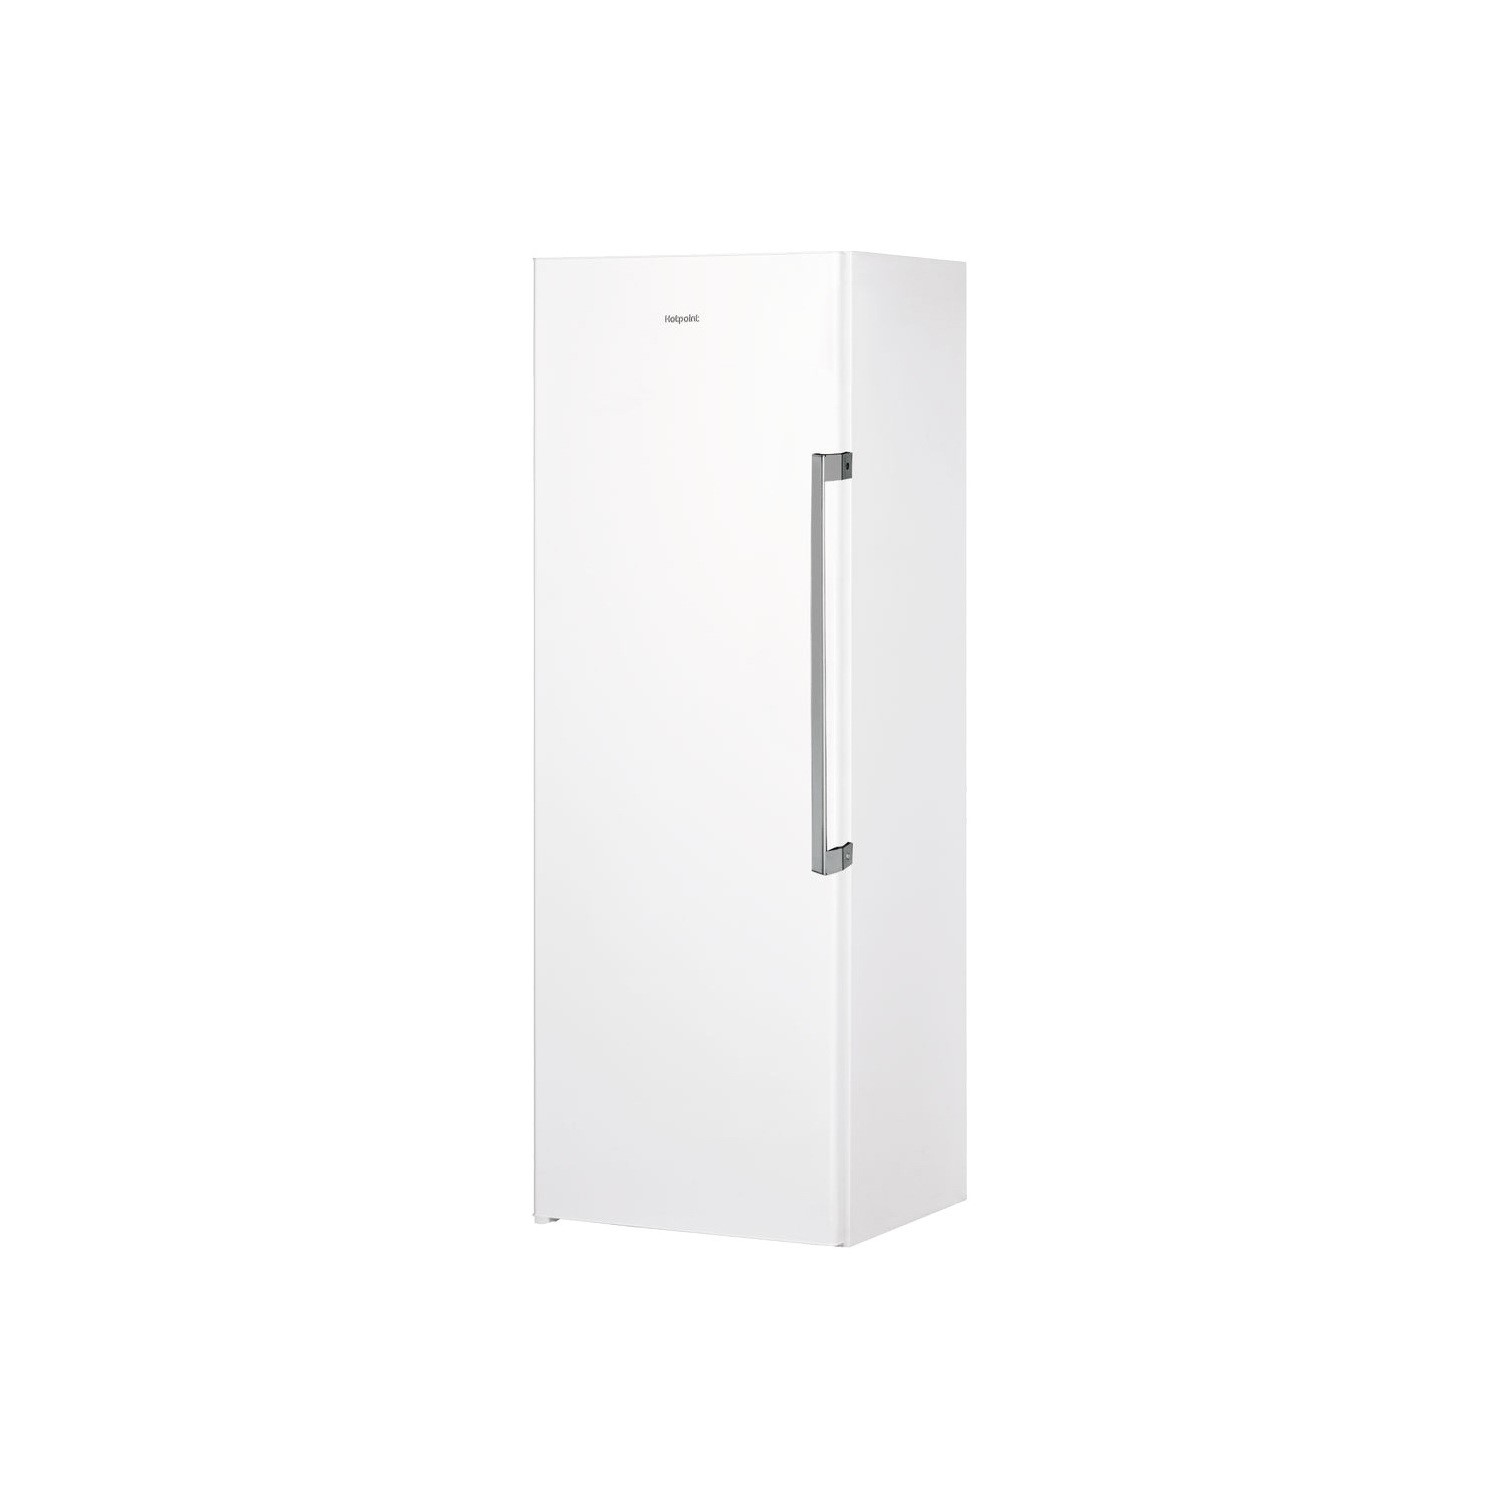 Hotpoint UH6F1CW 60cm Wide Frost Free Freestanding Upright Freezer - Polar  White